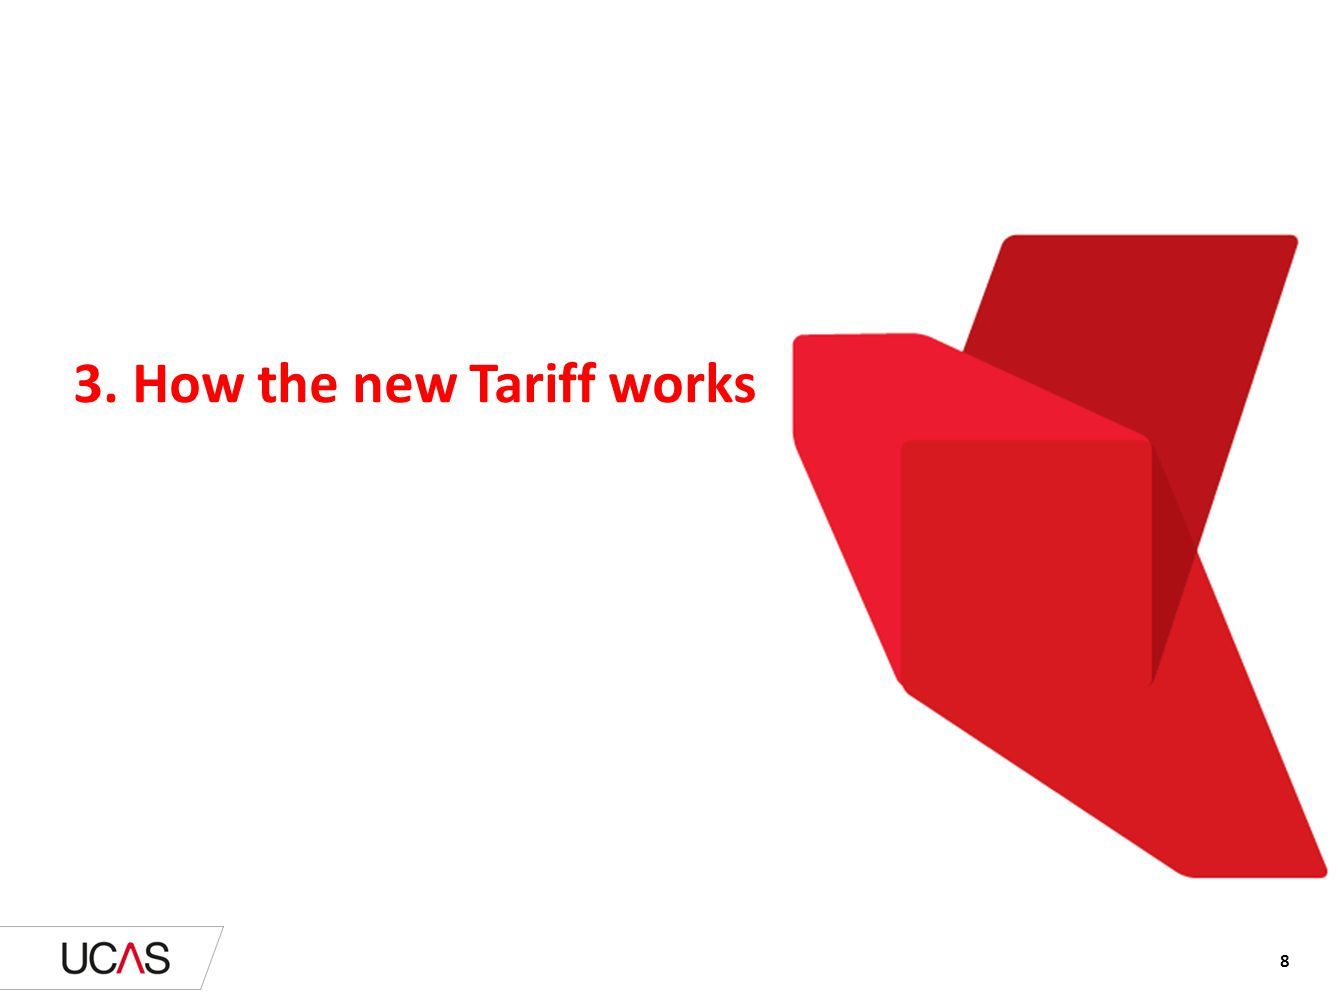 3. How the new Tariff works